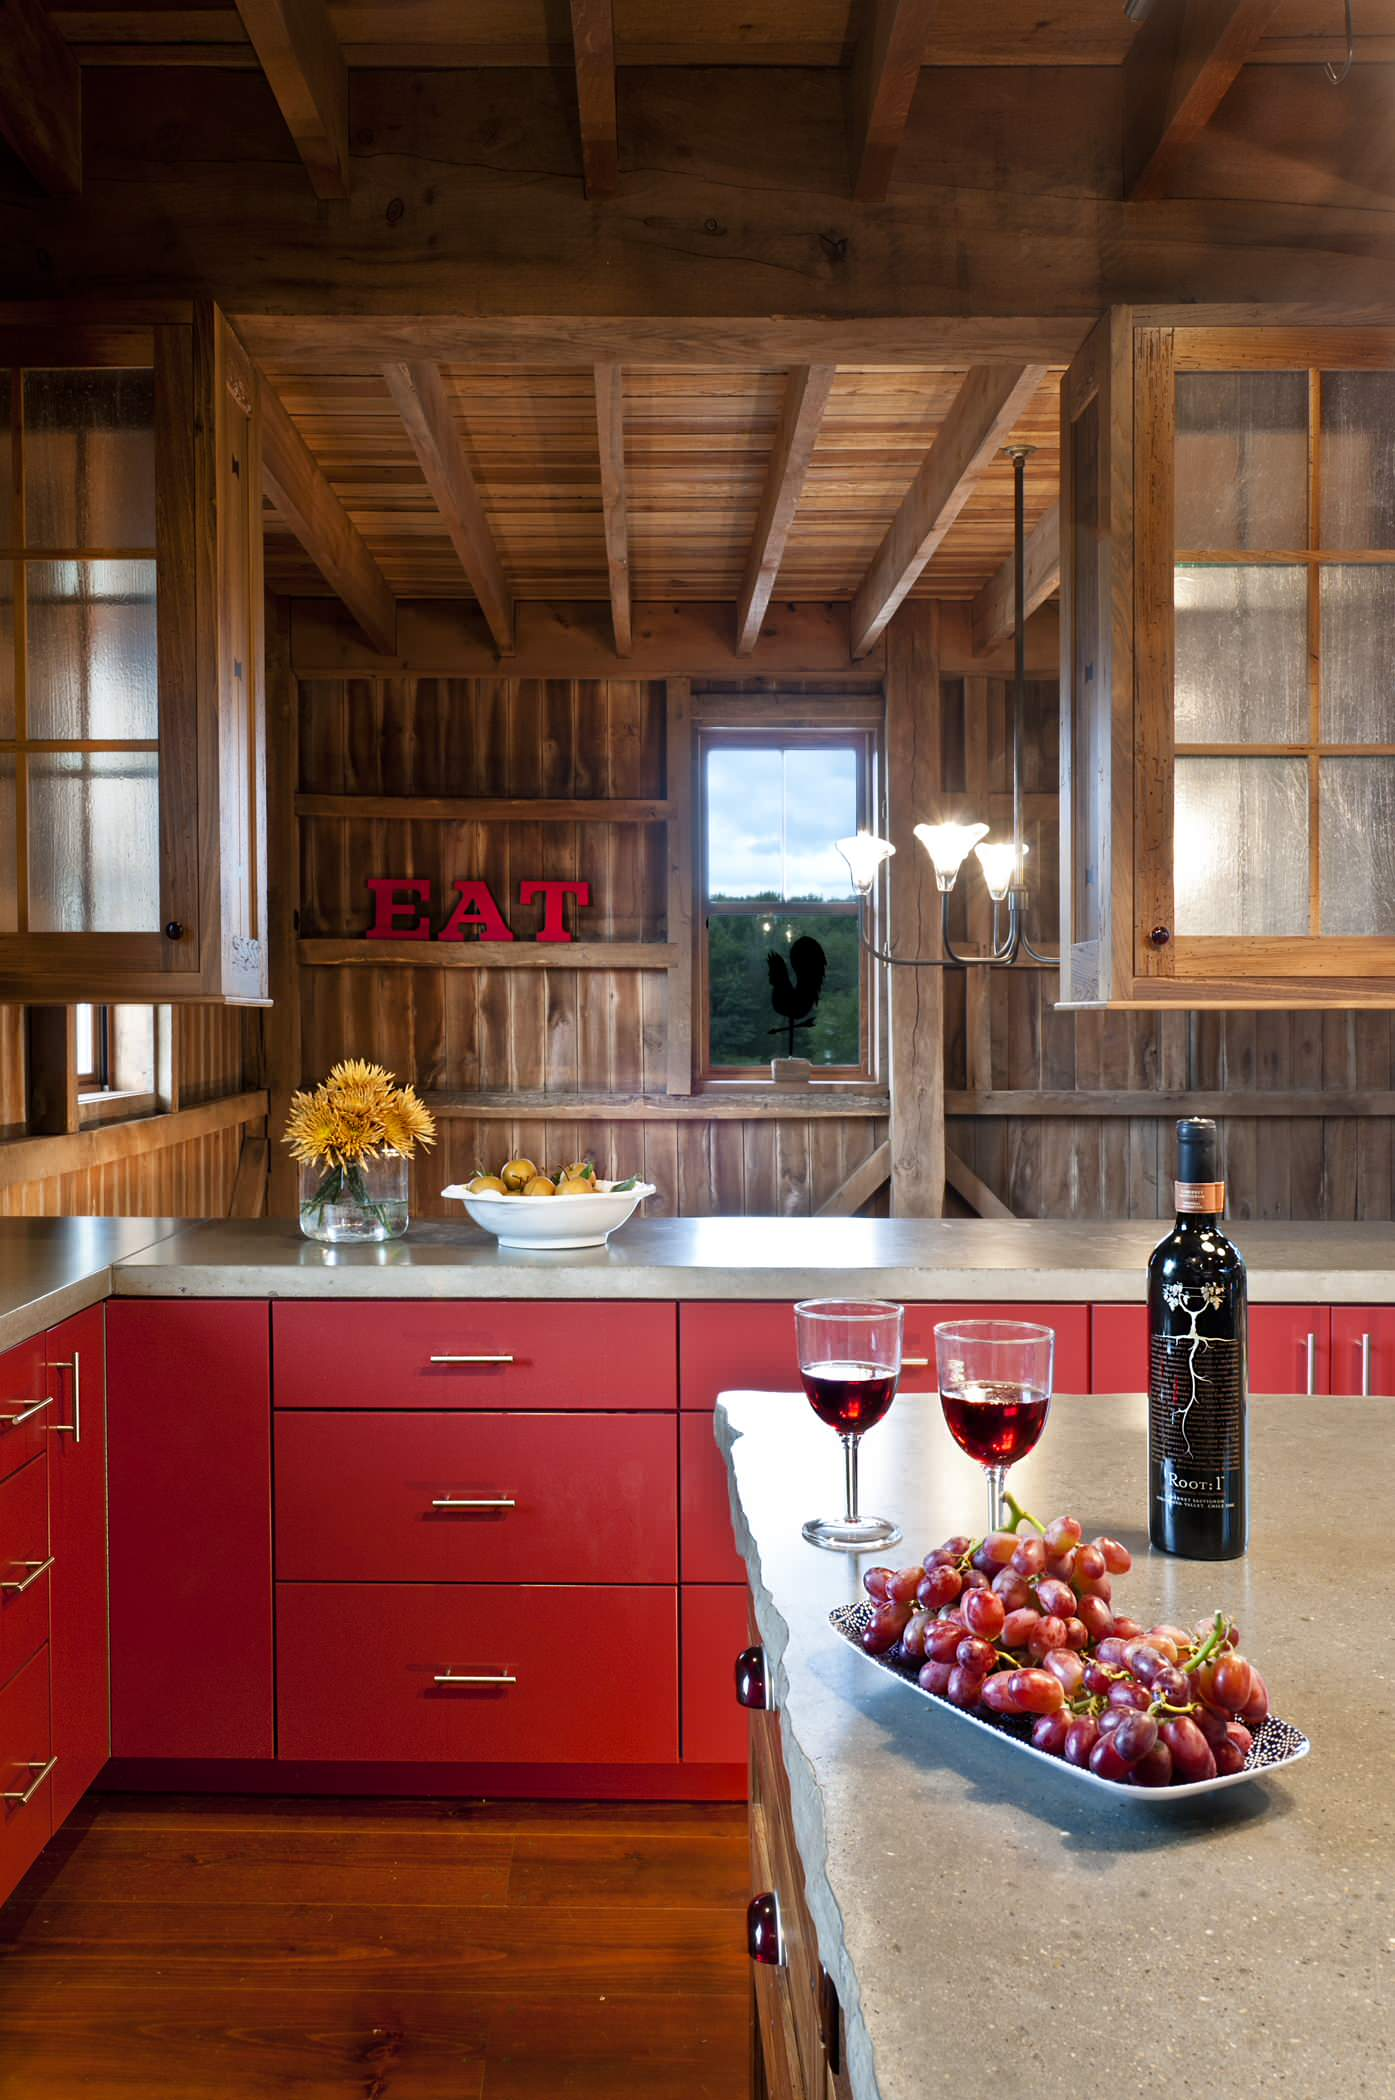 75 Beautiful Farmhouse Kitchen With Red Cabinets Pictures Ideas July 2021 Houzz